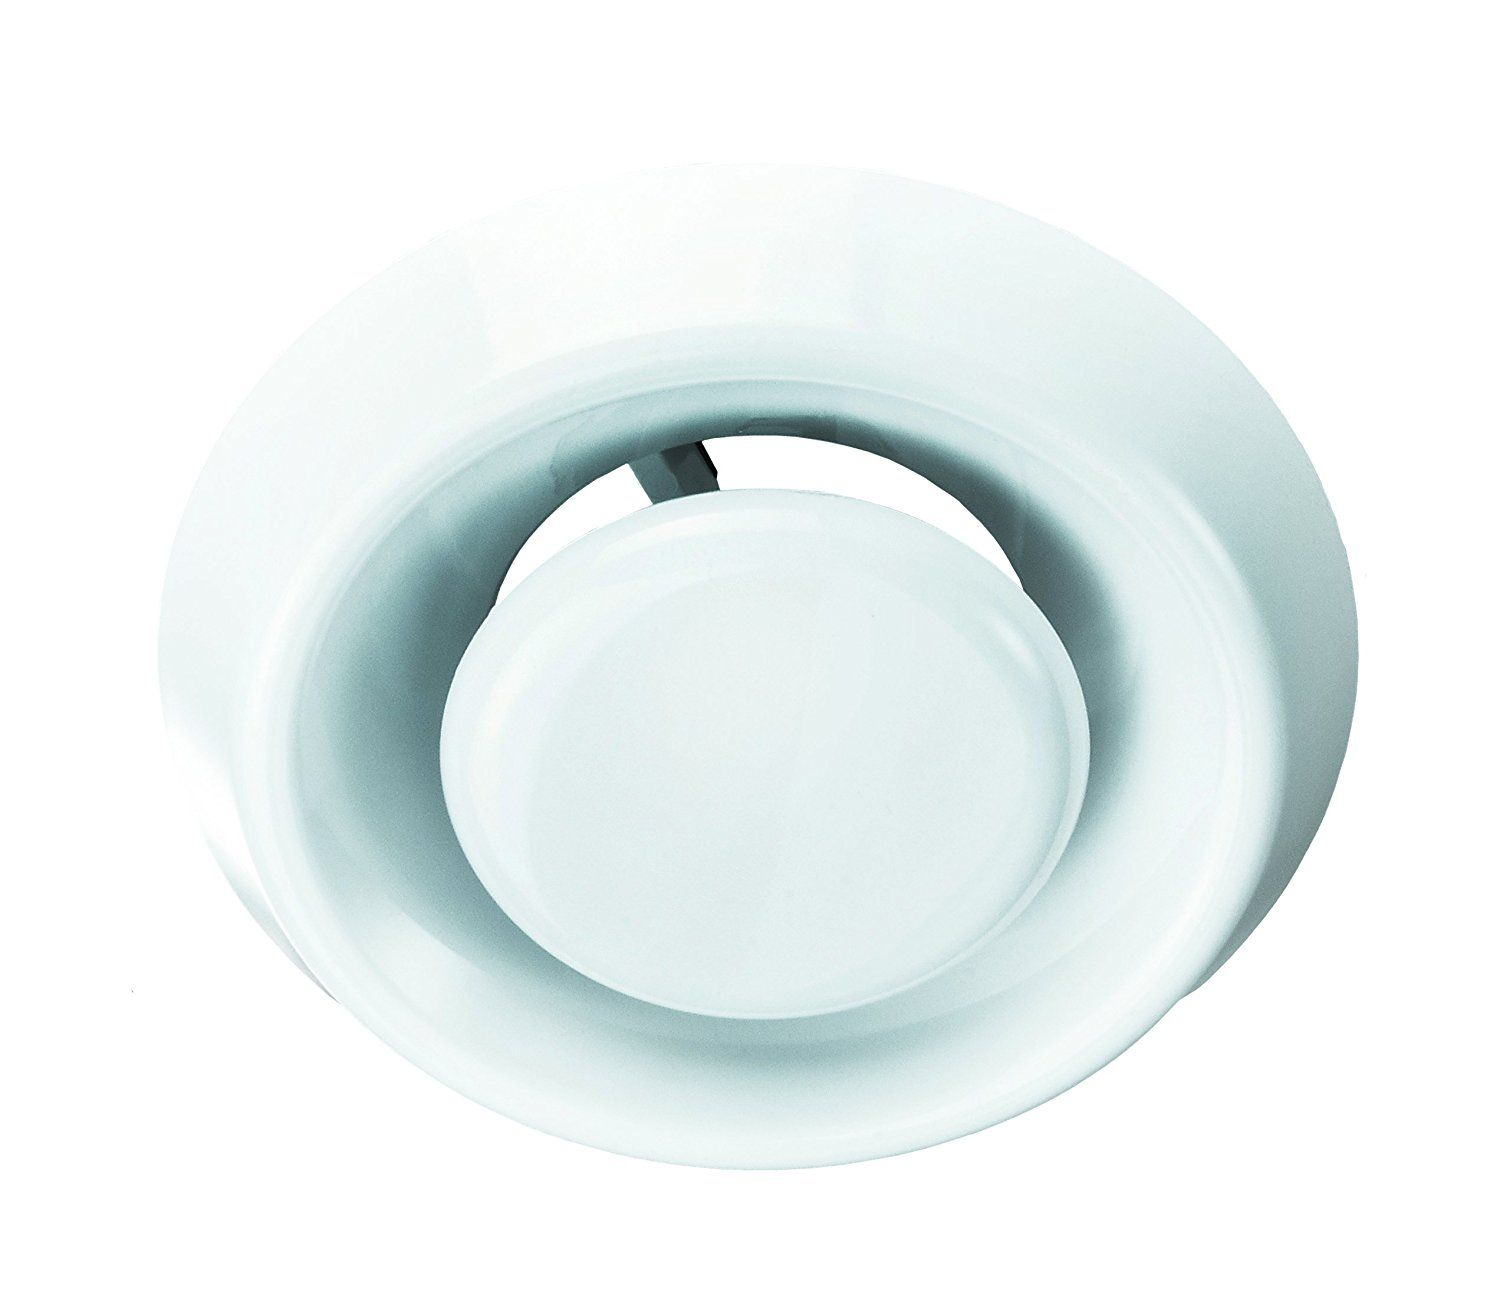 Vents Us A 100 Vr Abs Plastic Round Diffuser 4 Inch Click On The Image For Additional Details Diffuser Vented Roof Vents